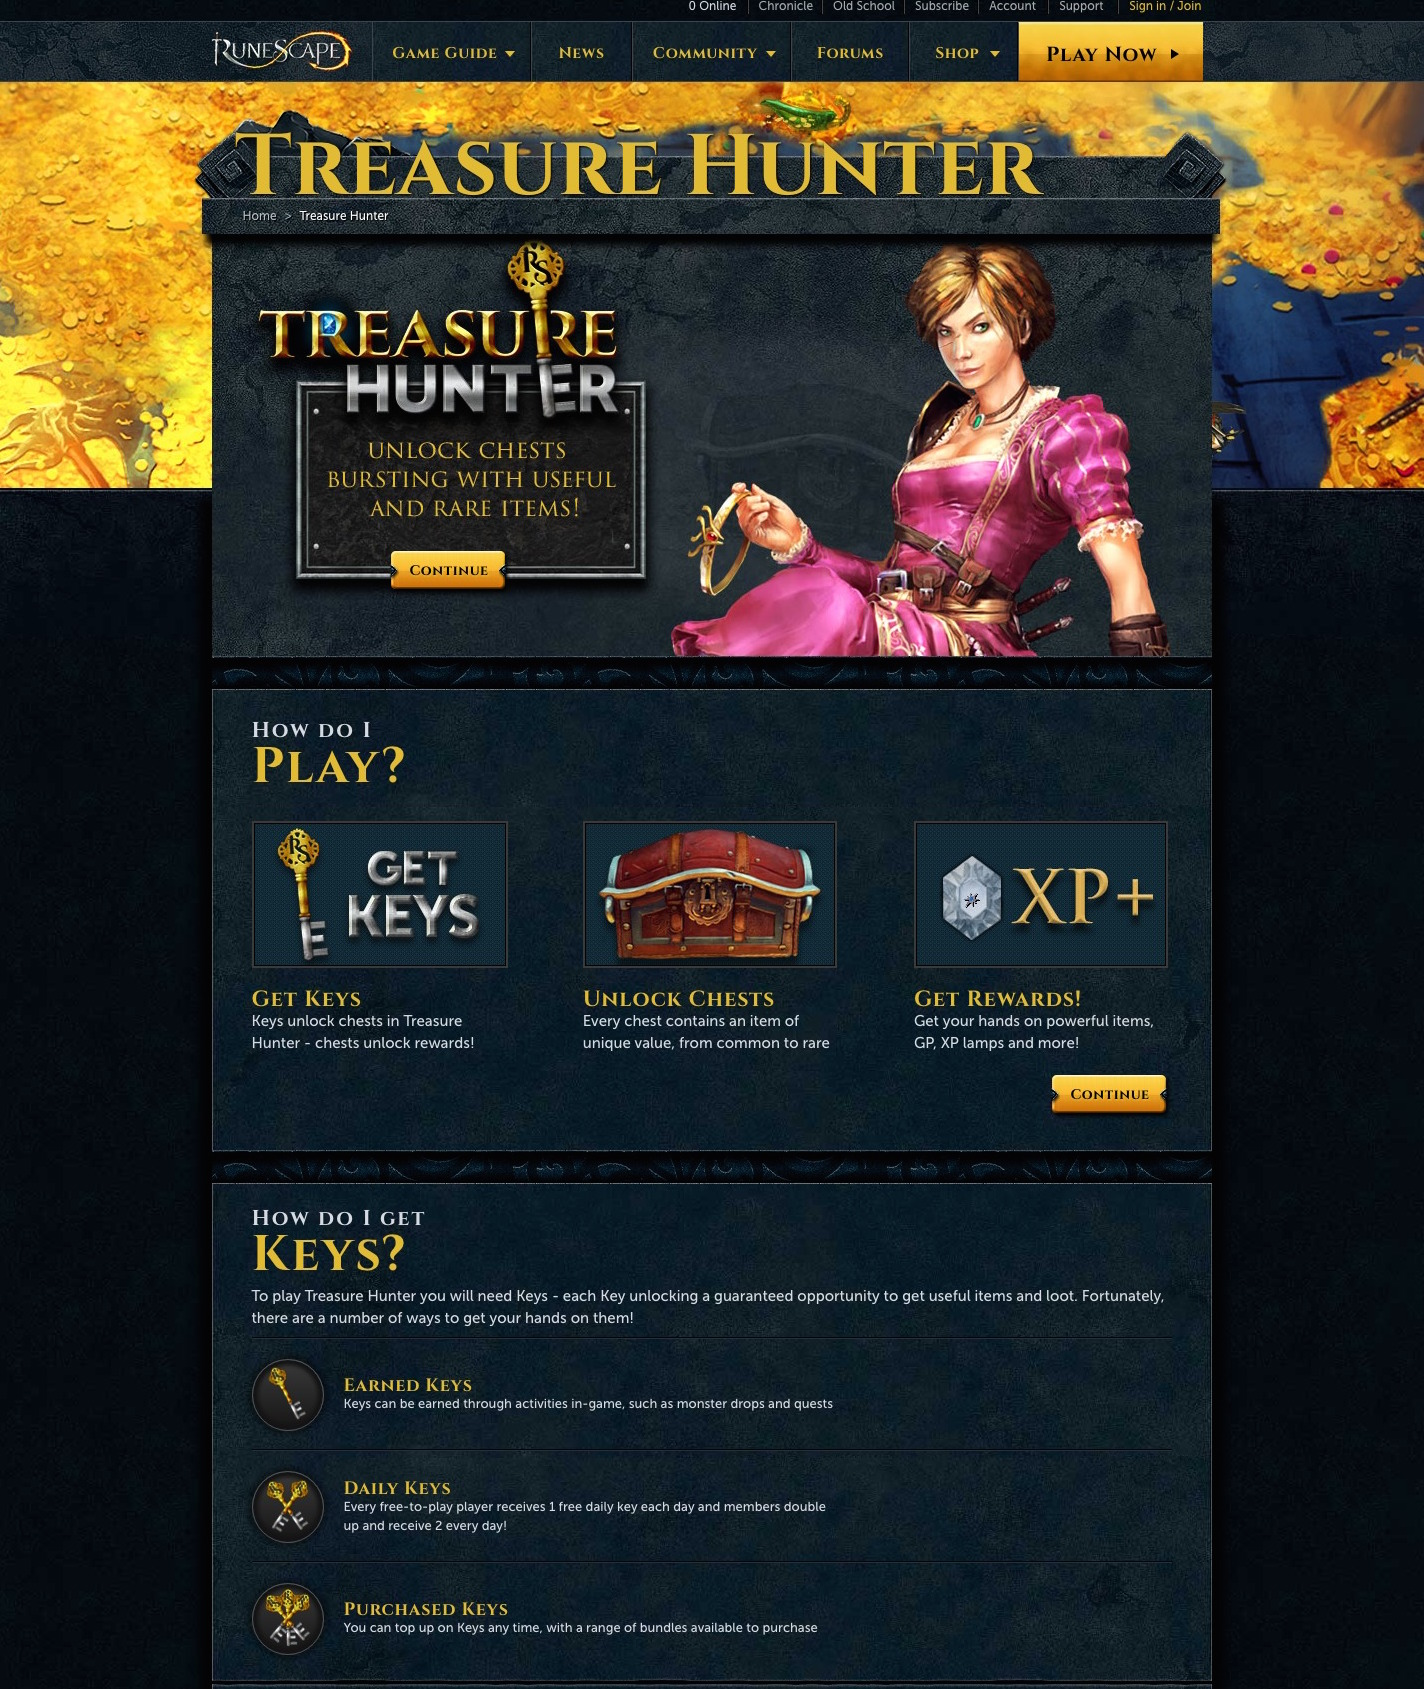 RuneScape Treasure Hunter control page for A/B Test